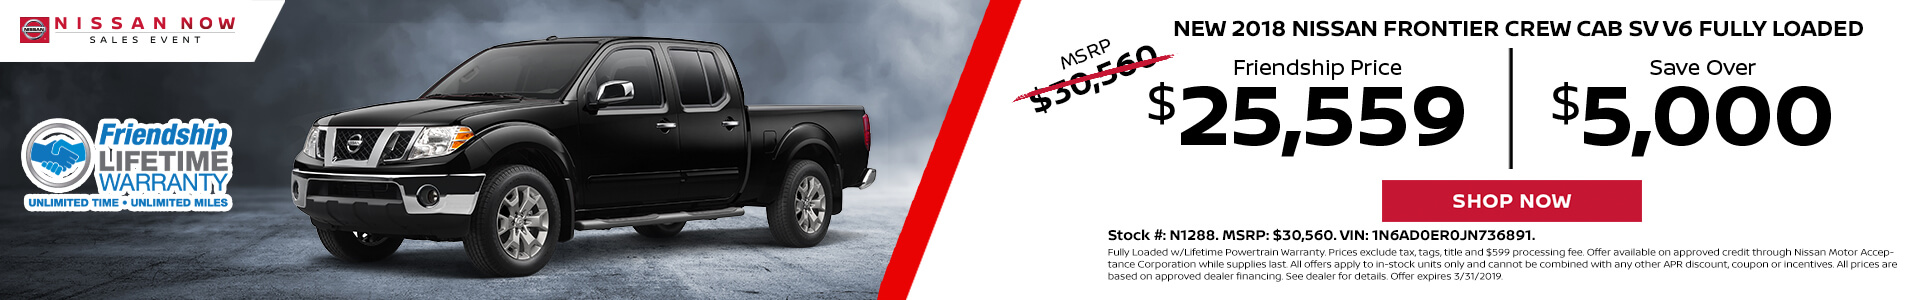 Nissan Frontier $25,559 Purchase